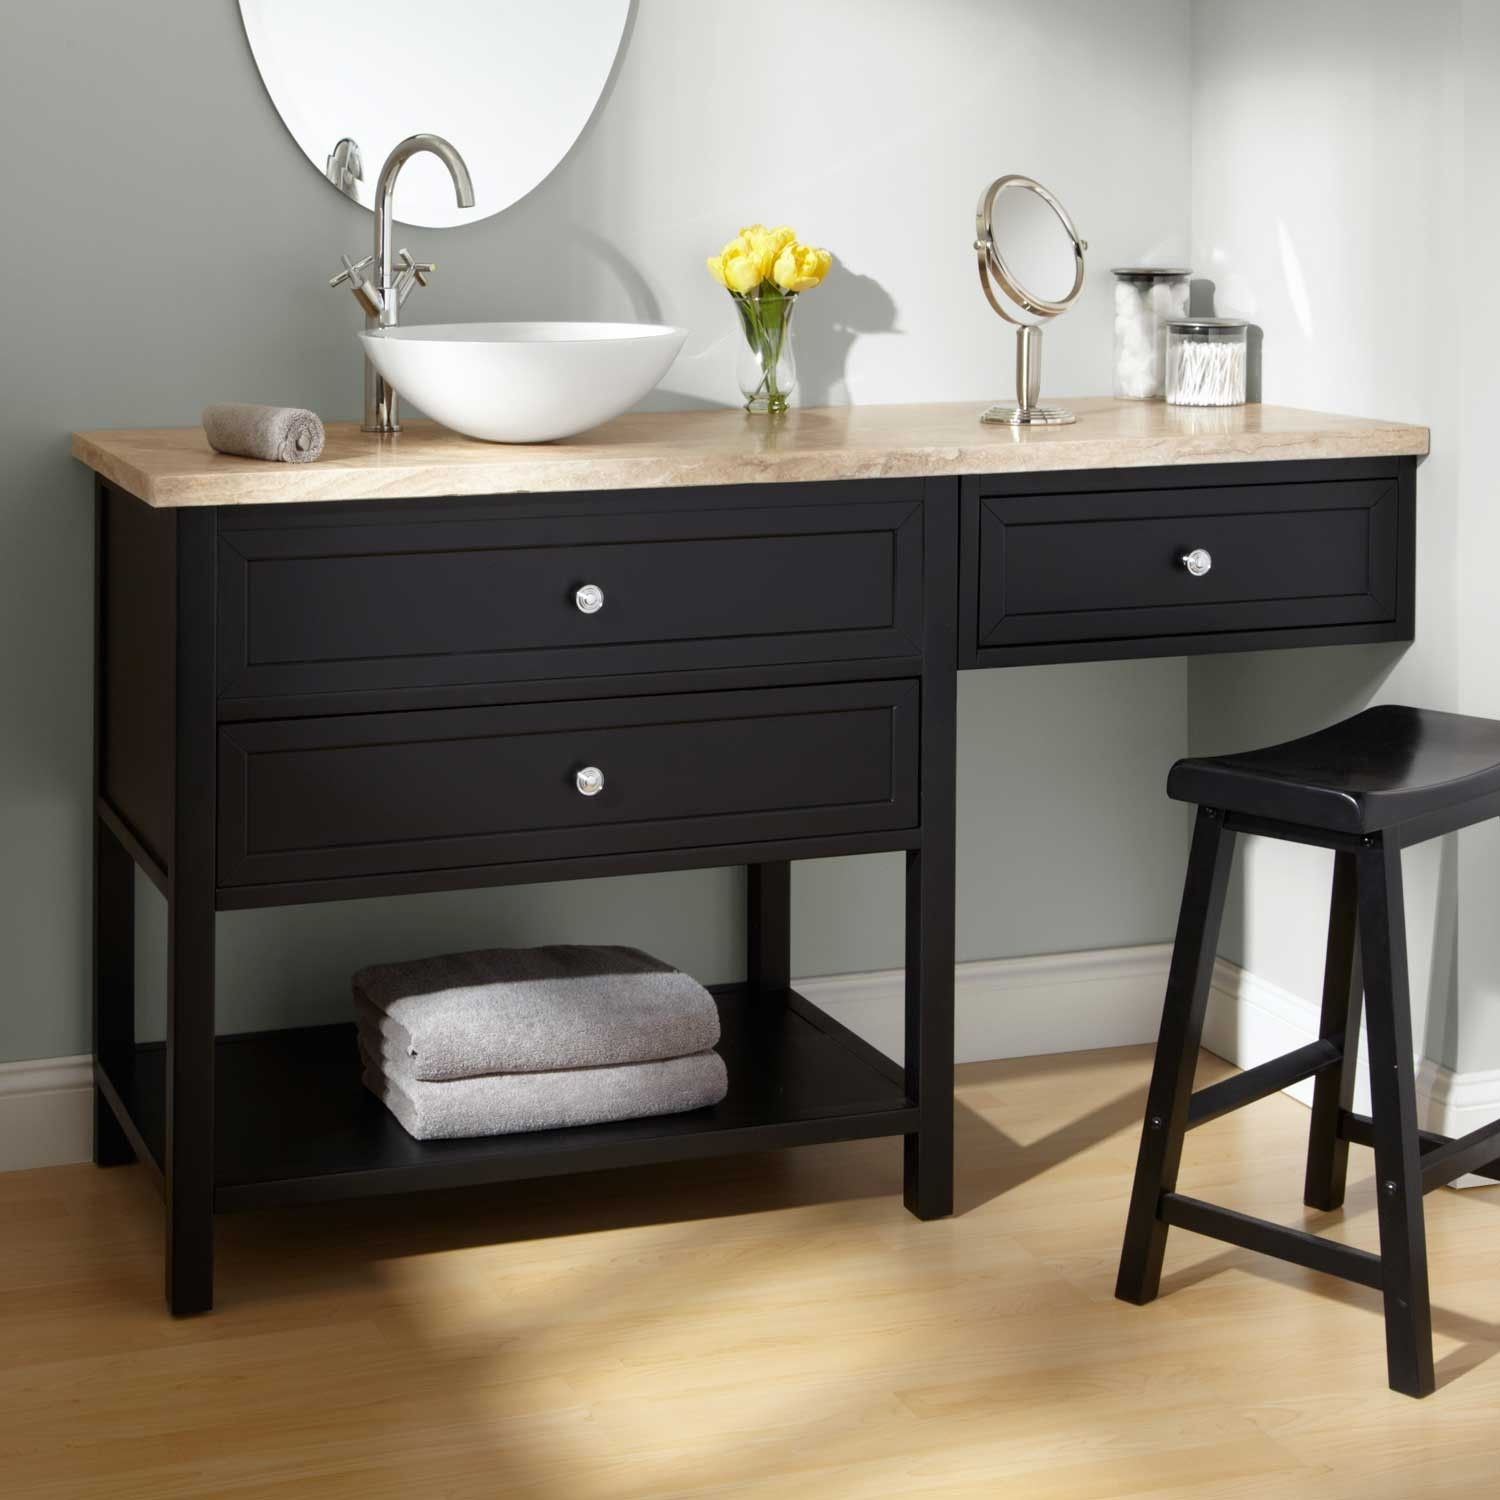 web ideas inspiration storage hayworth organization design chair vanity unique bring makeup